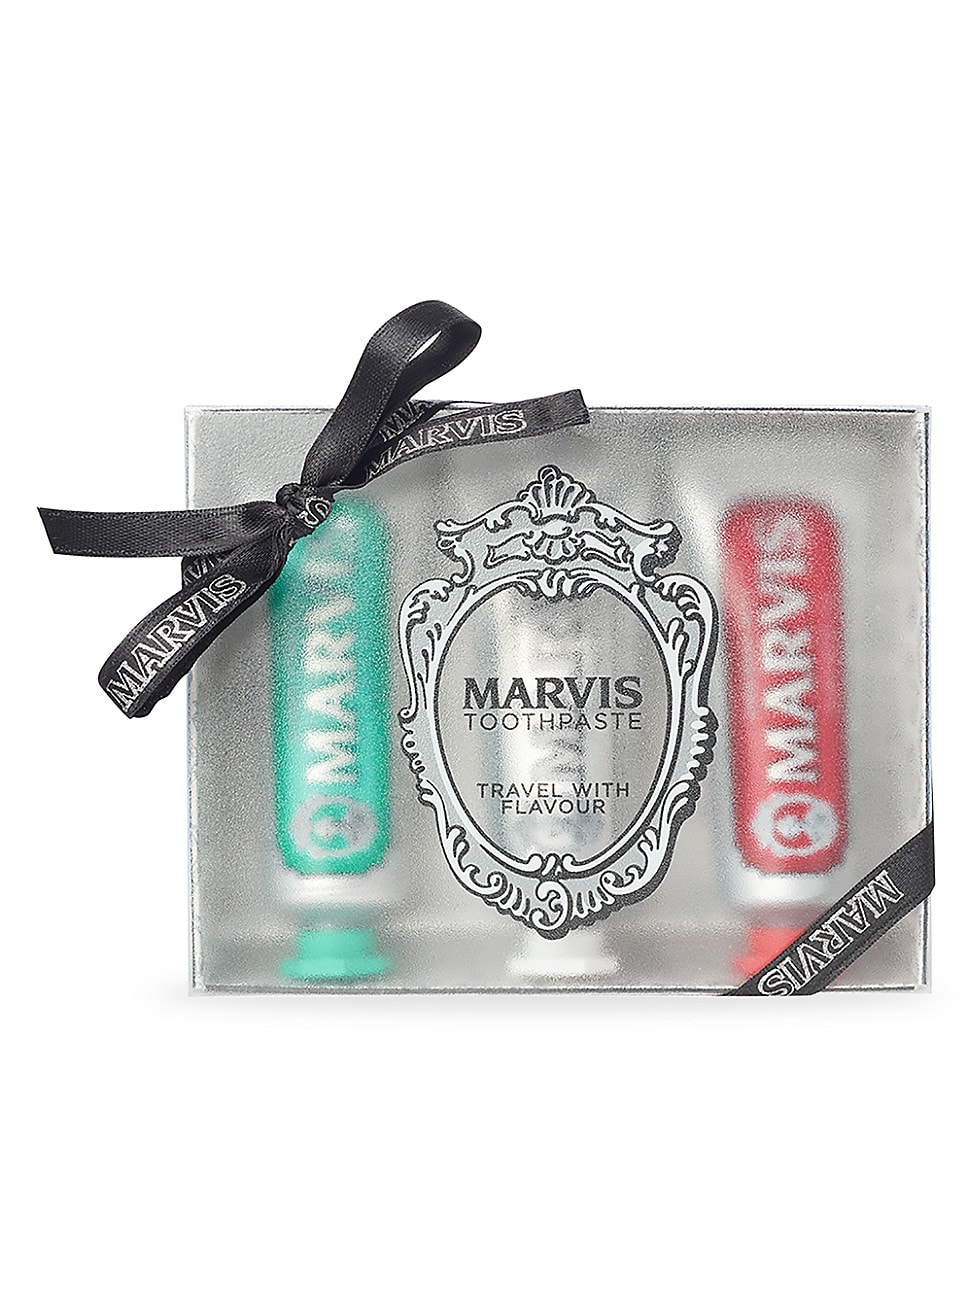 Marvis WOMEN'S TRAVEL WITH FLAVOUR 4-PIECE TOOTHPASTE SET